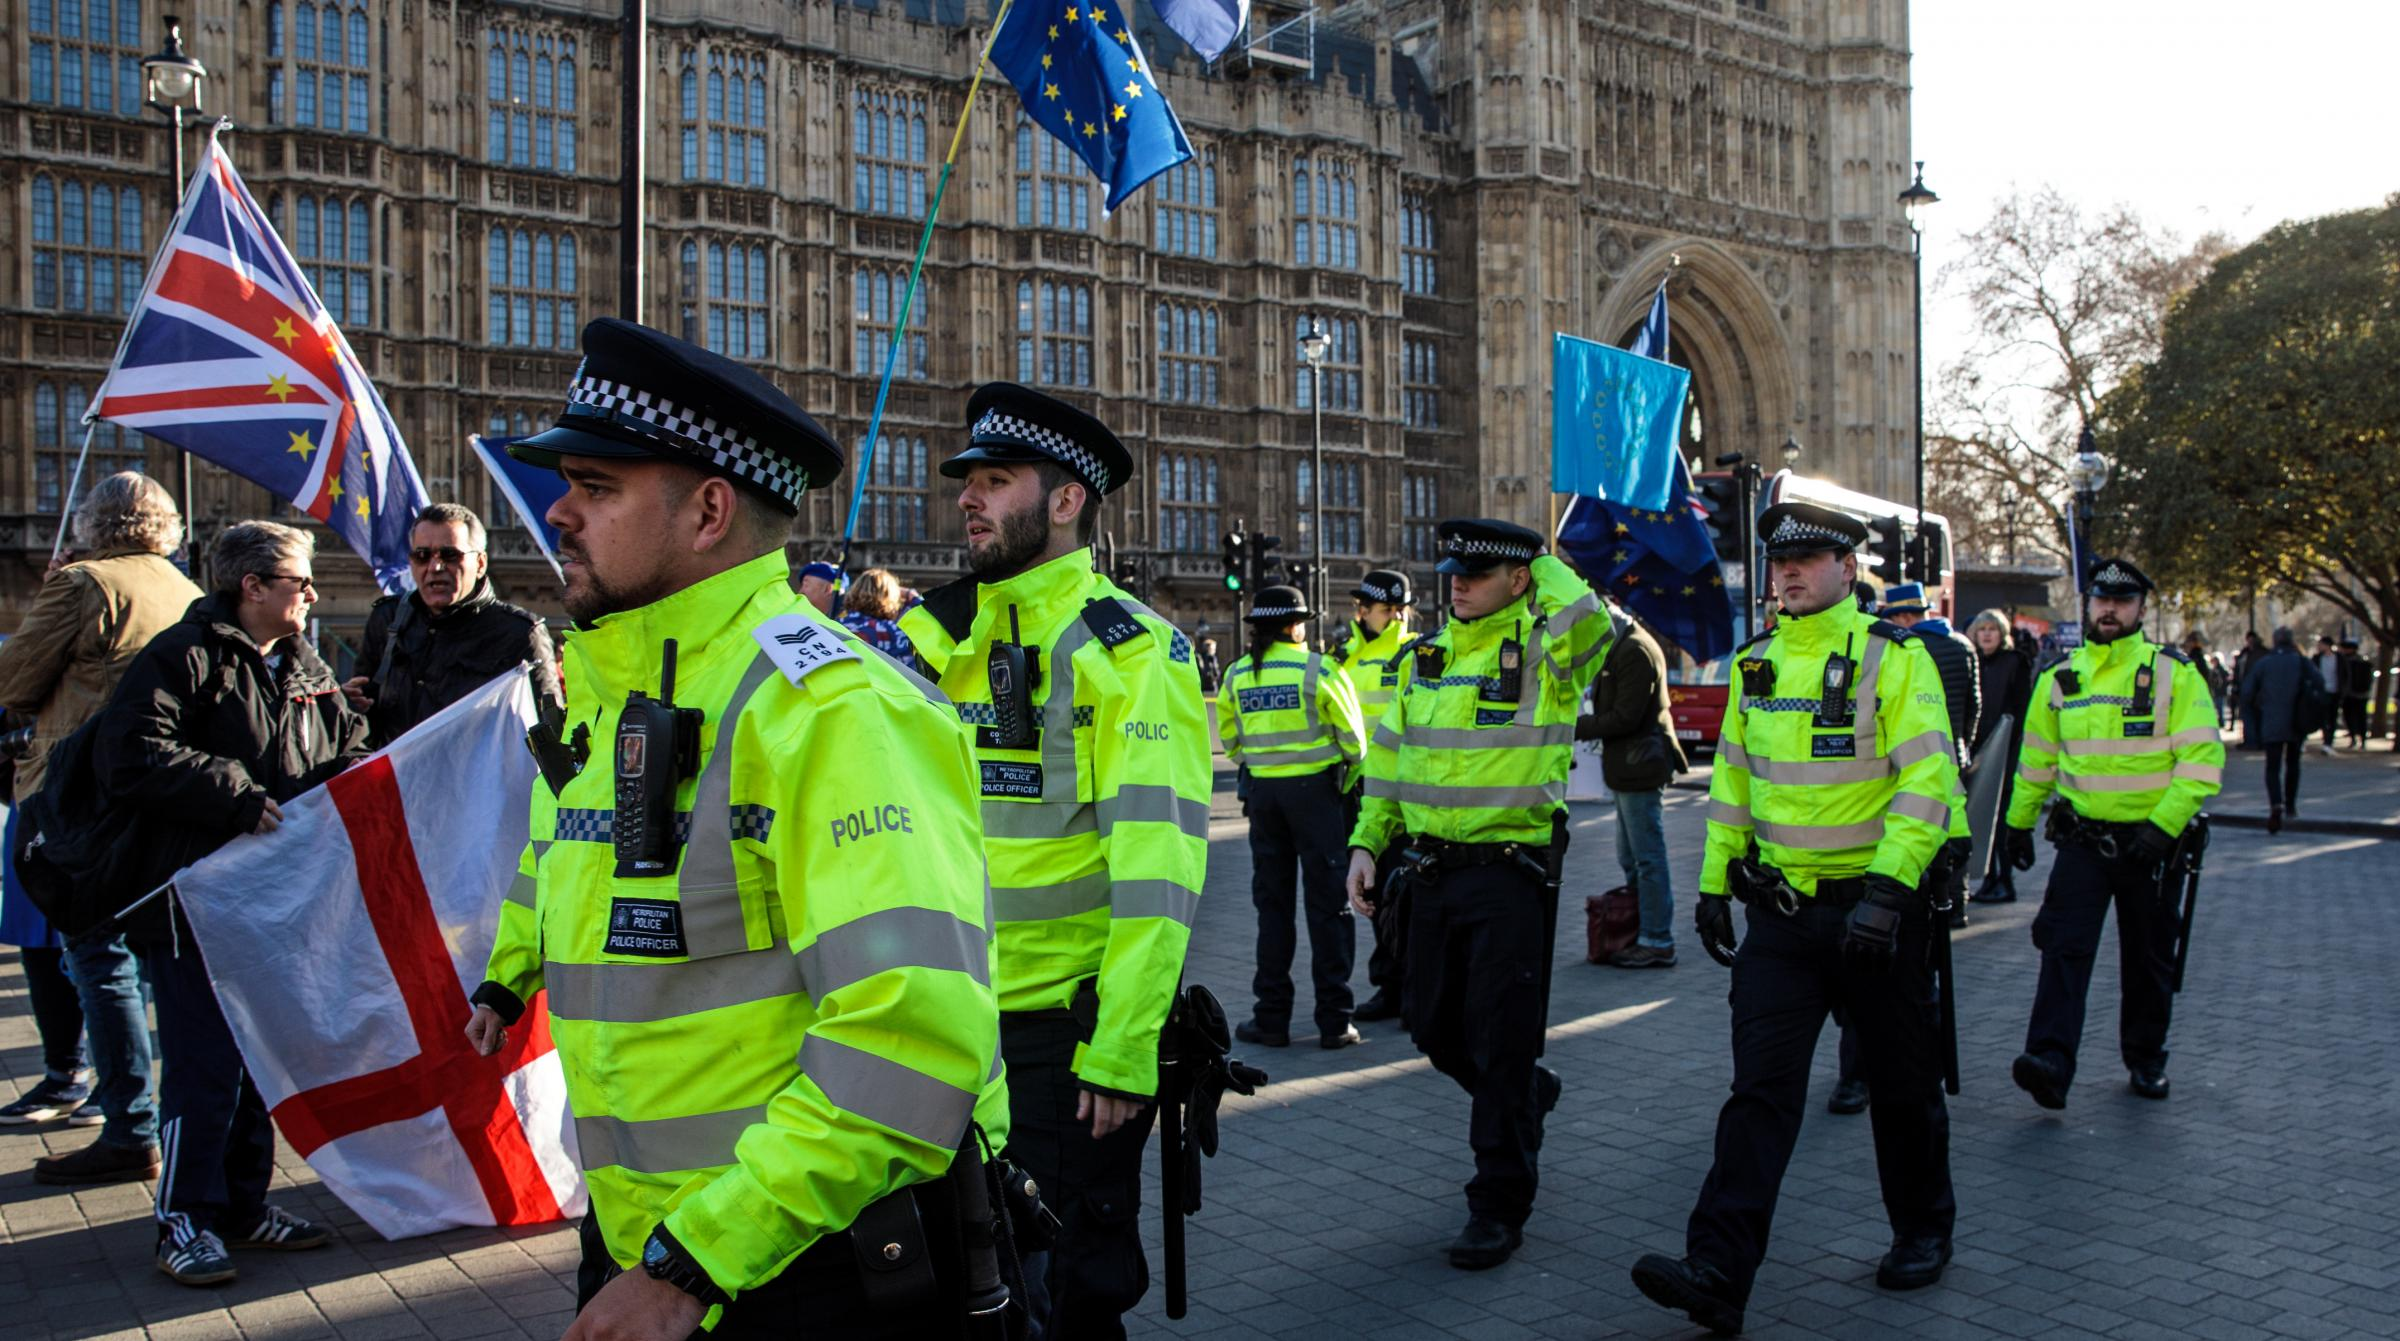 Officers are allegedly expected to intervene if protesters tried to stop MPs going about their daily routines